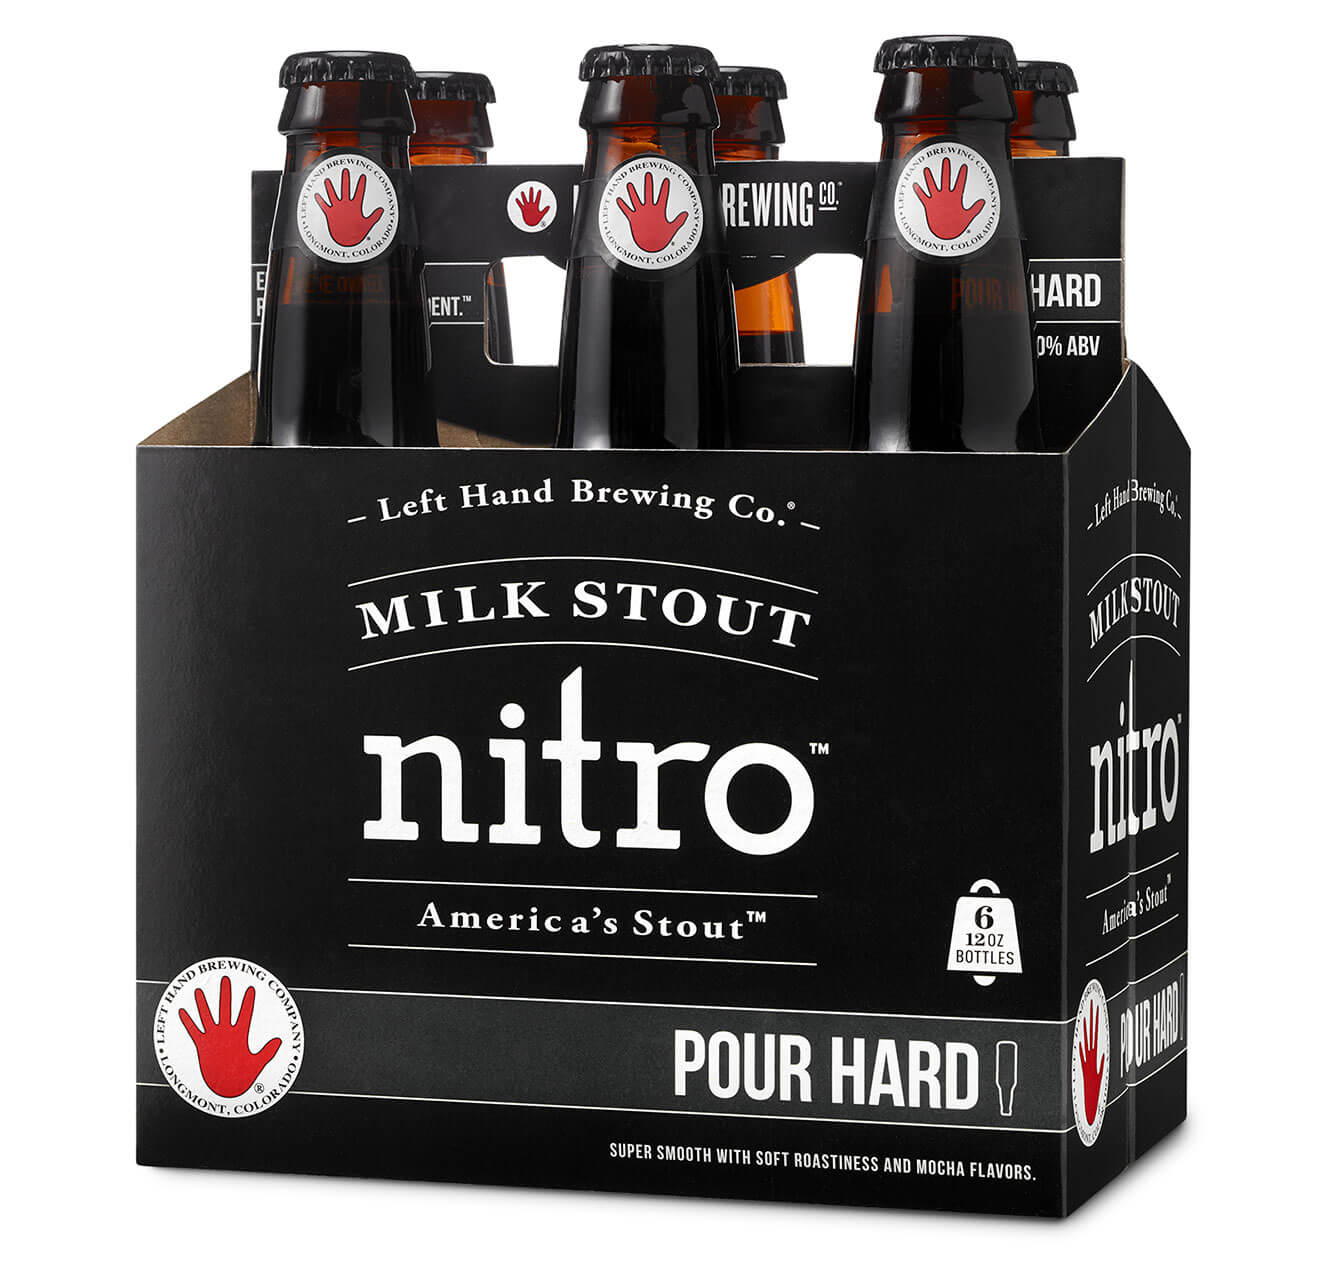 Left-Hand-Brewing-Milk-Stout-Nitro-6-Pack